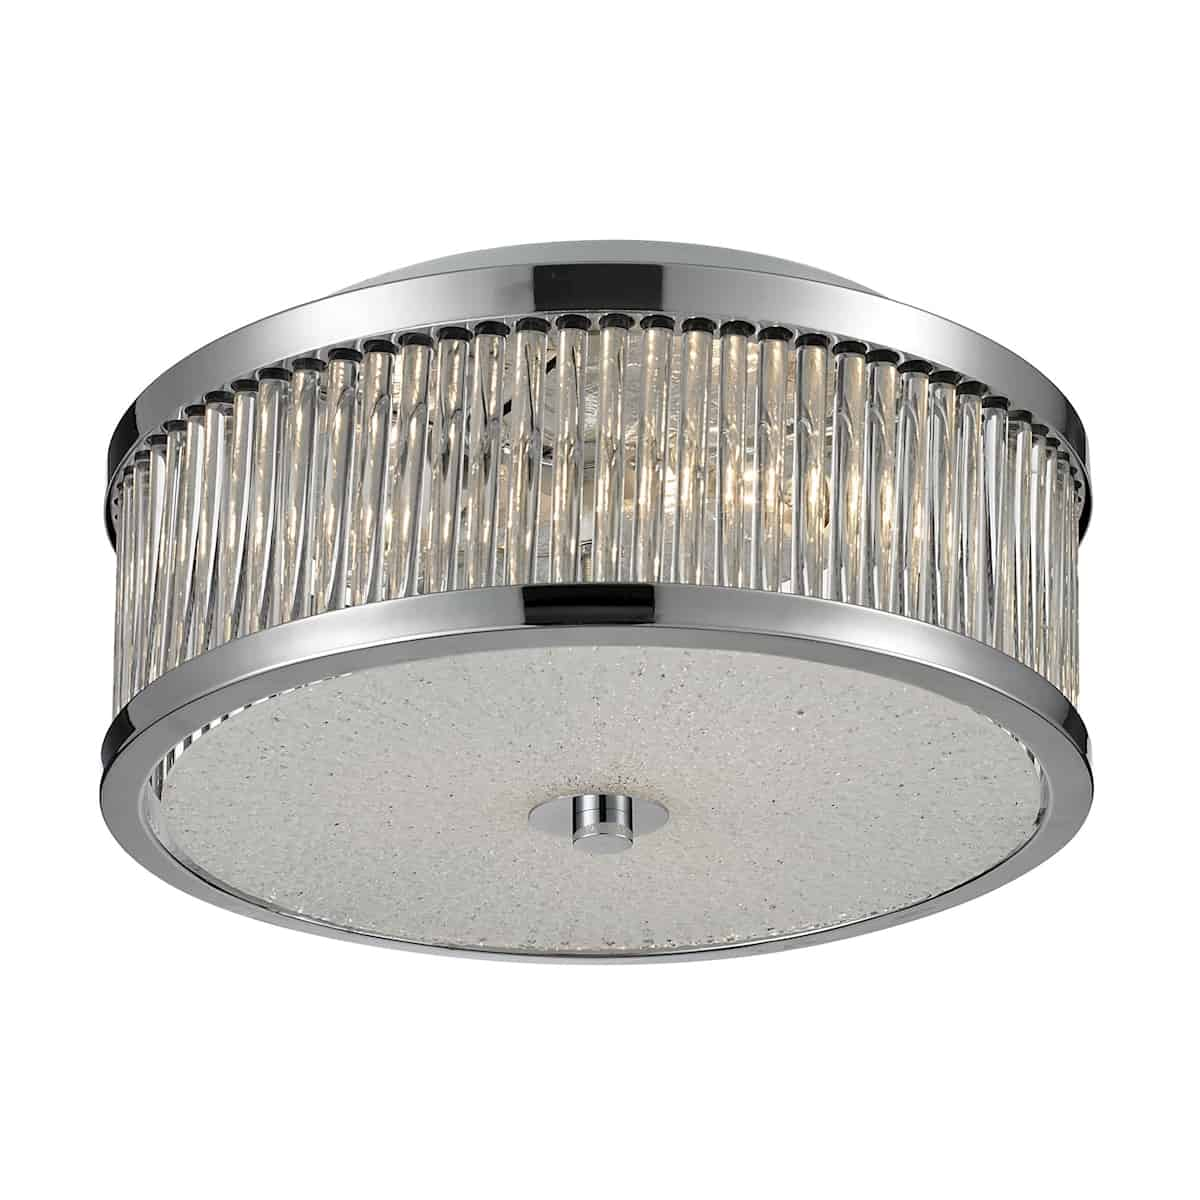 EL-81040/3_This sleek drum shaped design has glass rods that diffuse light into a glistening array. The characteristics of the textured glass diffuser and polished chrome finish further enhance the dazzling light array to invigorate any decor.